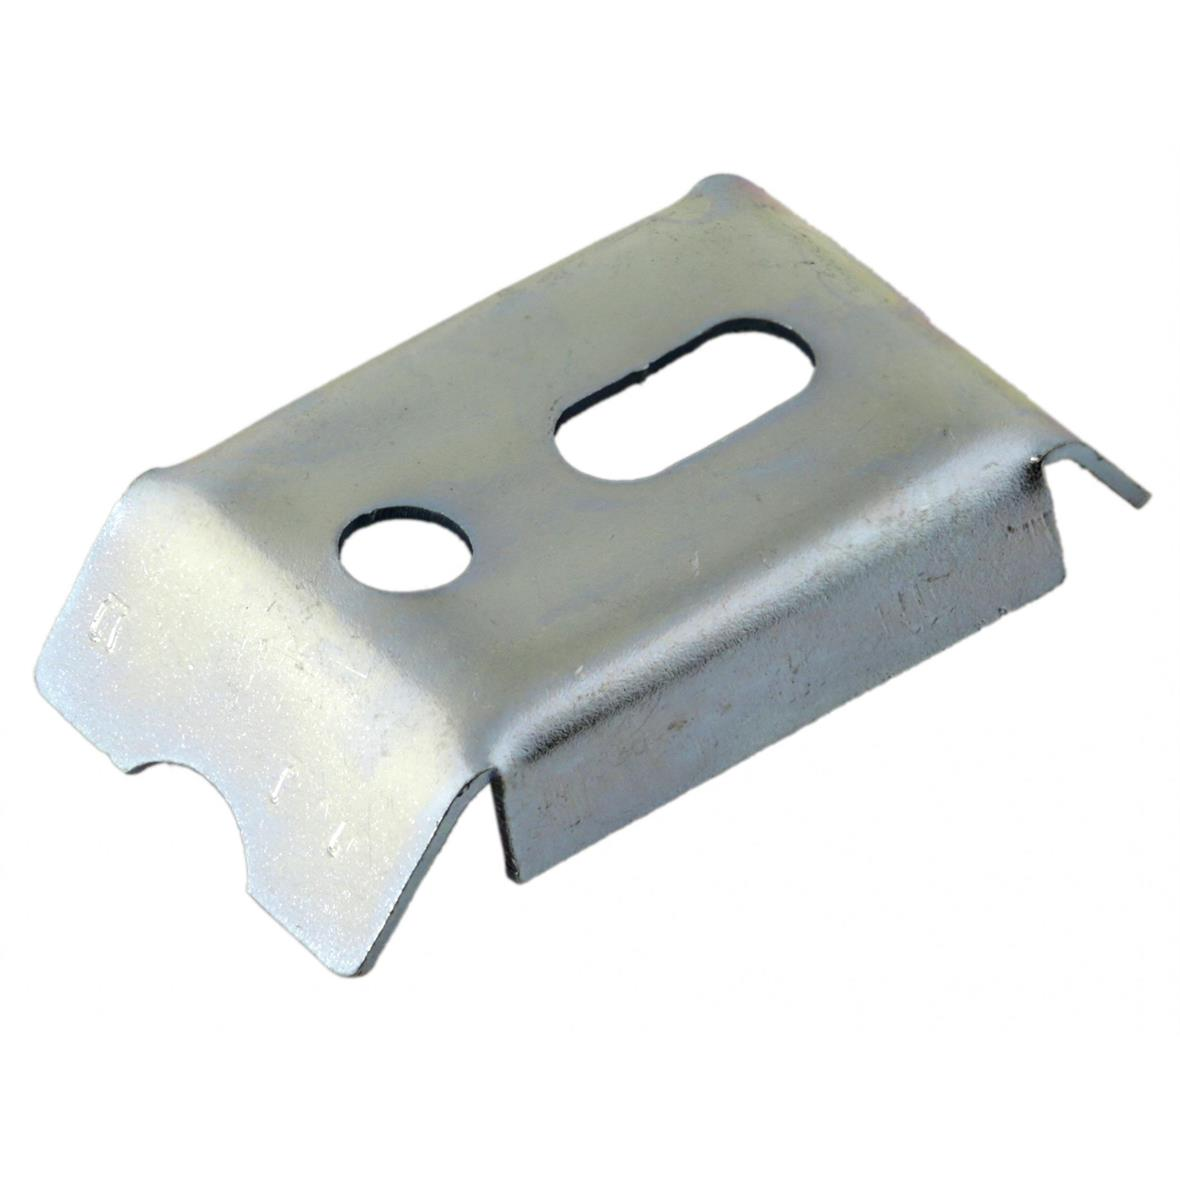 Product Image for 'Bracket mounting side panel, innerTitle'